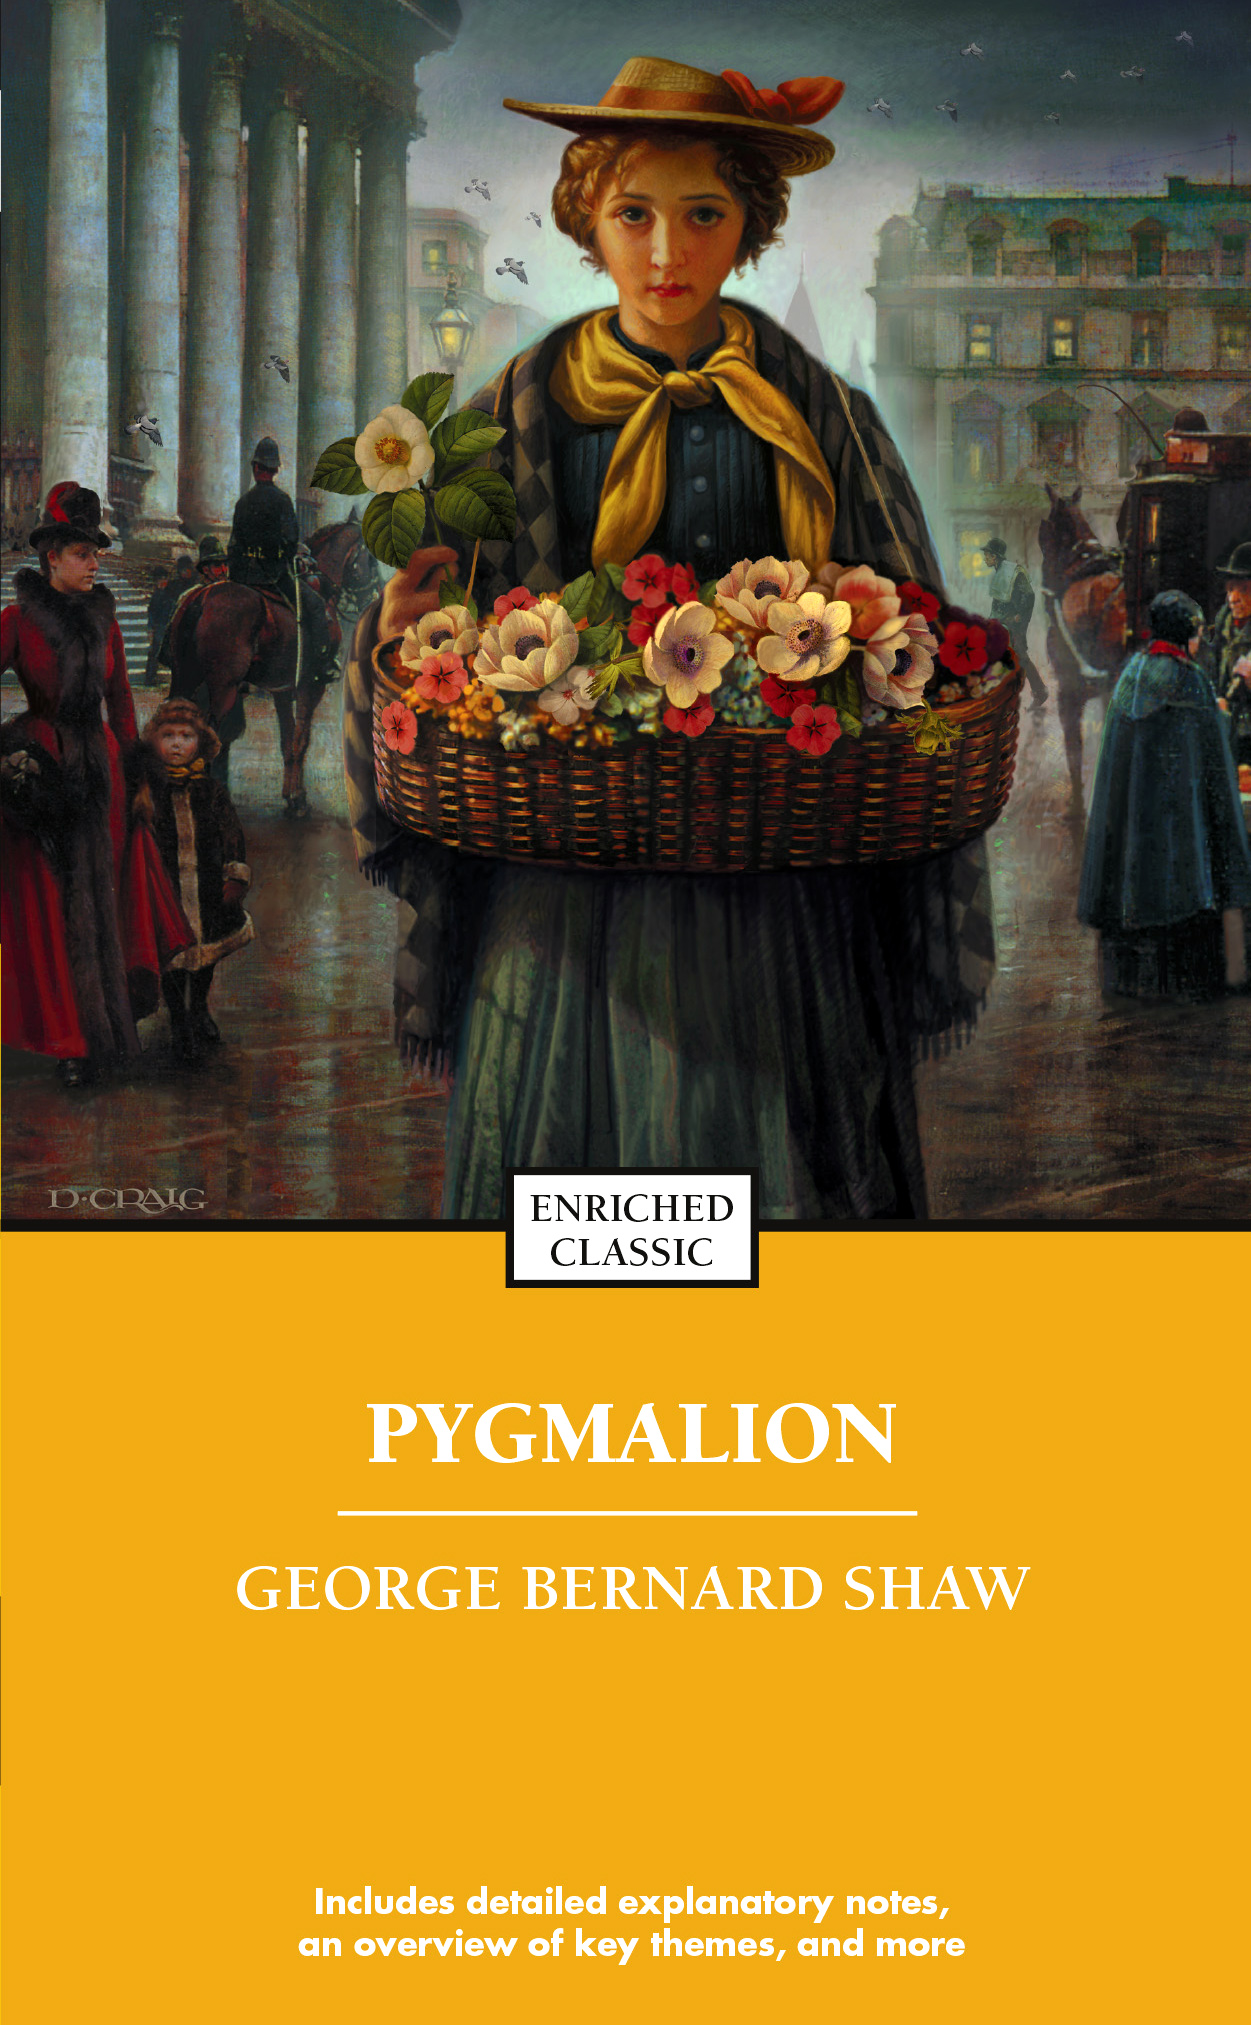 analysis of george bernard shaws pygmalion Graveyard book an analysis of pygmalion by shaw v1 by neil in george bernard shaws pygmalion, eliza doolittle explains: you see, really and truly, apart from the.